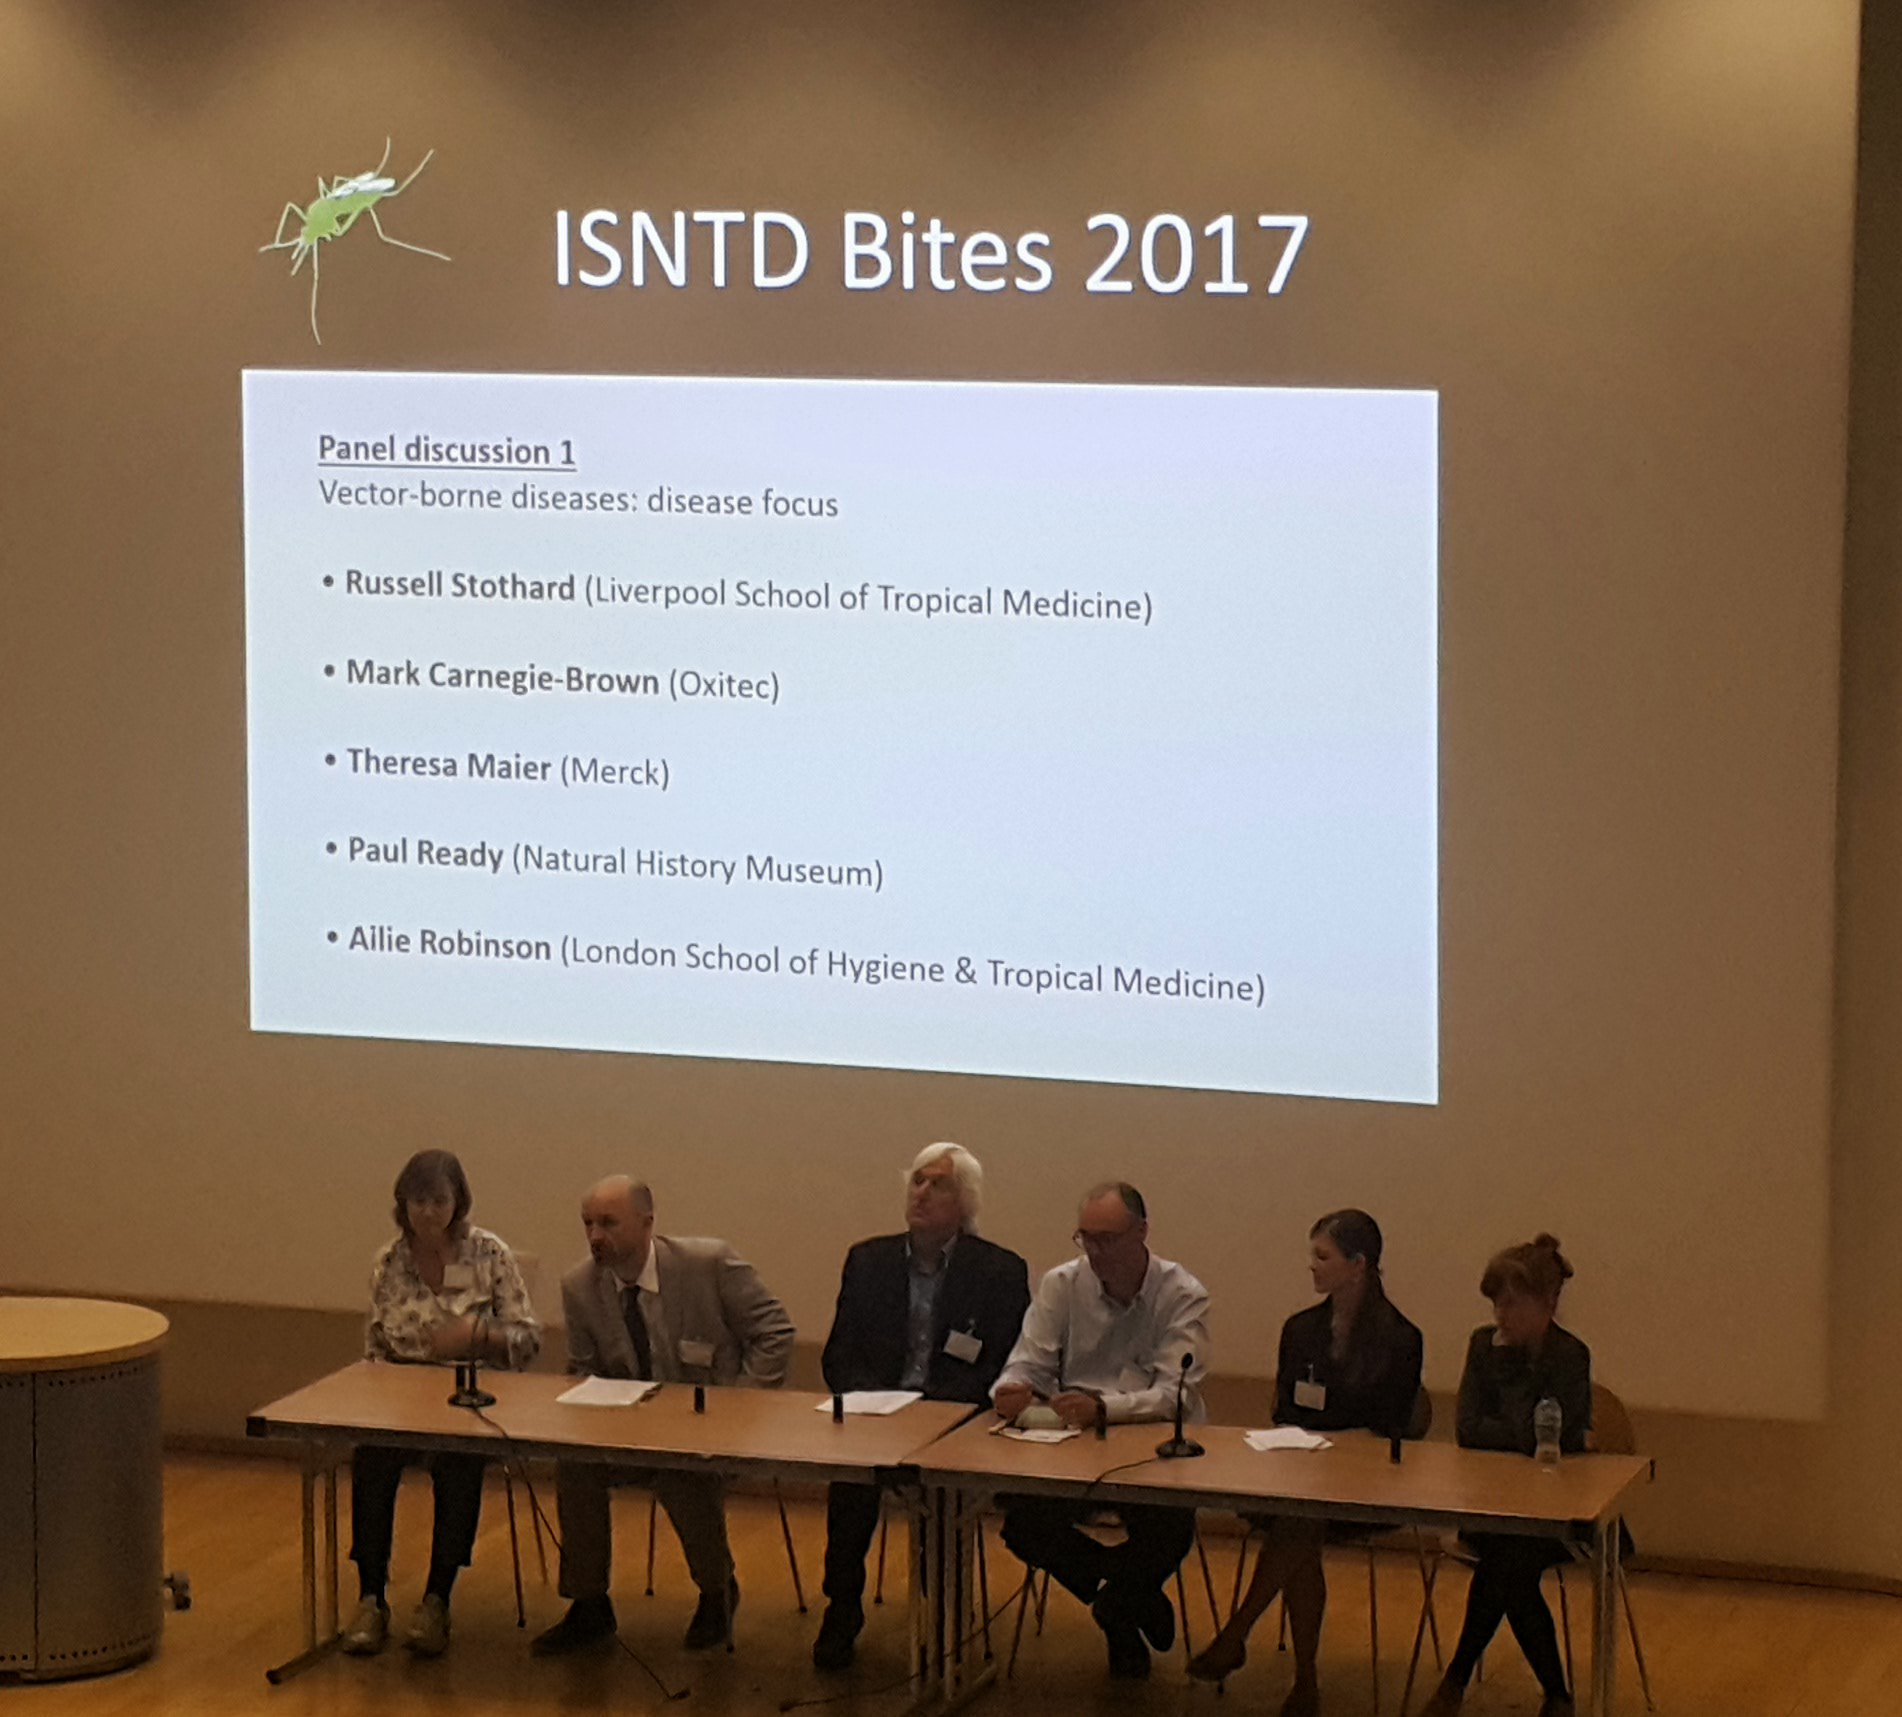 Fantastic closing panel discussion, musing on need for cross-sectoral, multidisciplinary collaboration/data-sharing to #beatNTDs #ISNTDbites https://t.co/L1joeLPfVa